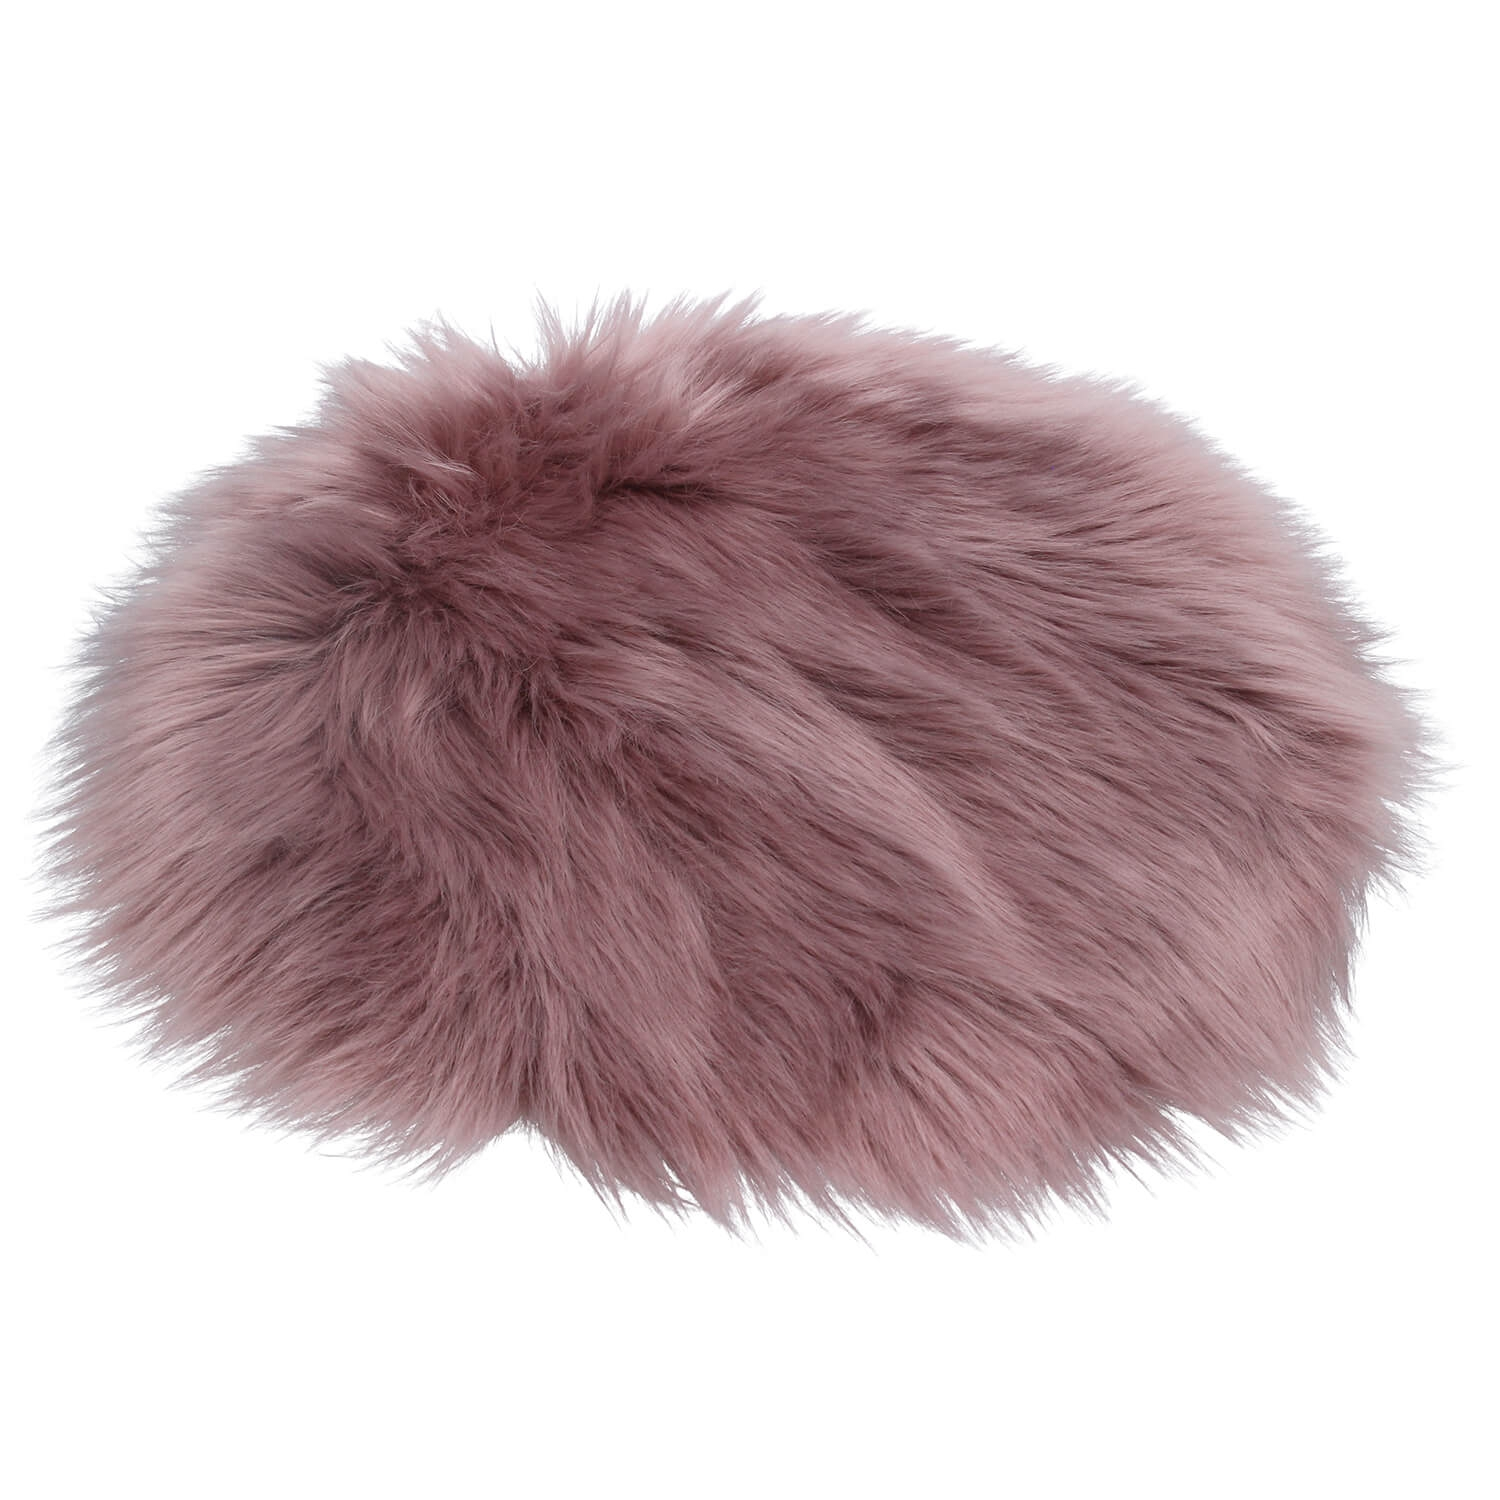 Image of Gisela Graham Faux Fur Relaxed Seat Cover, Dusky Mauve